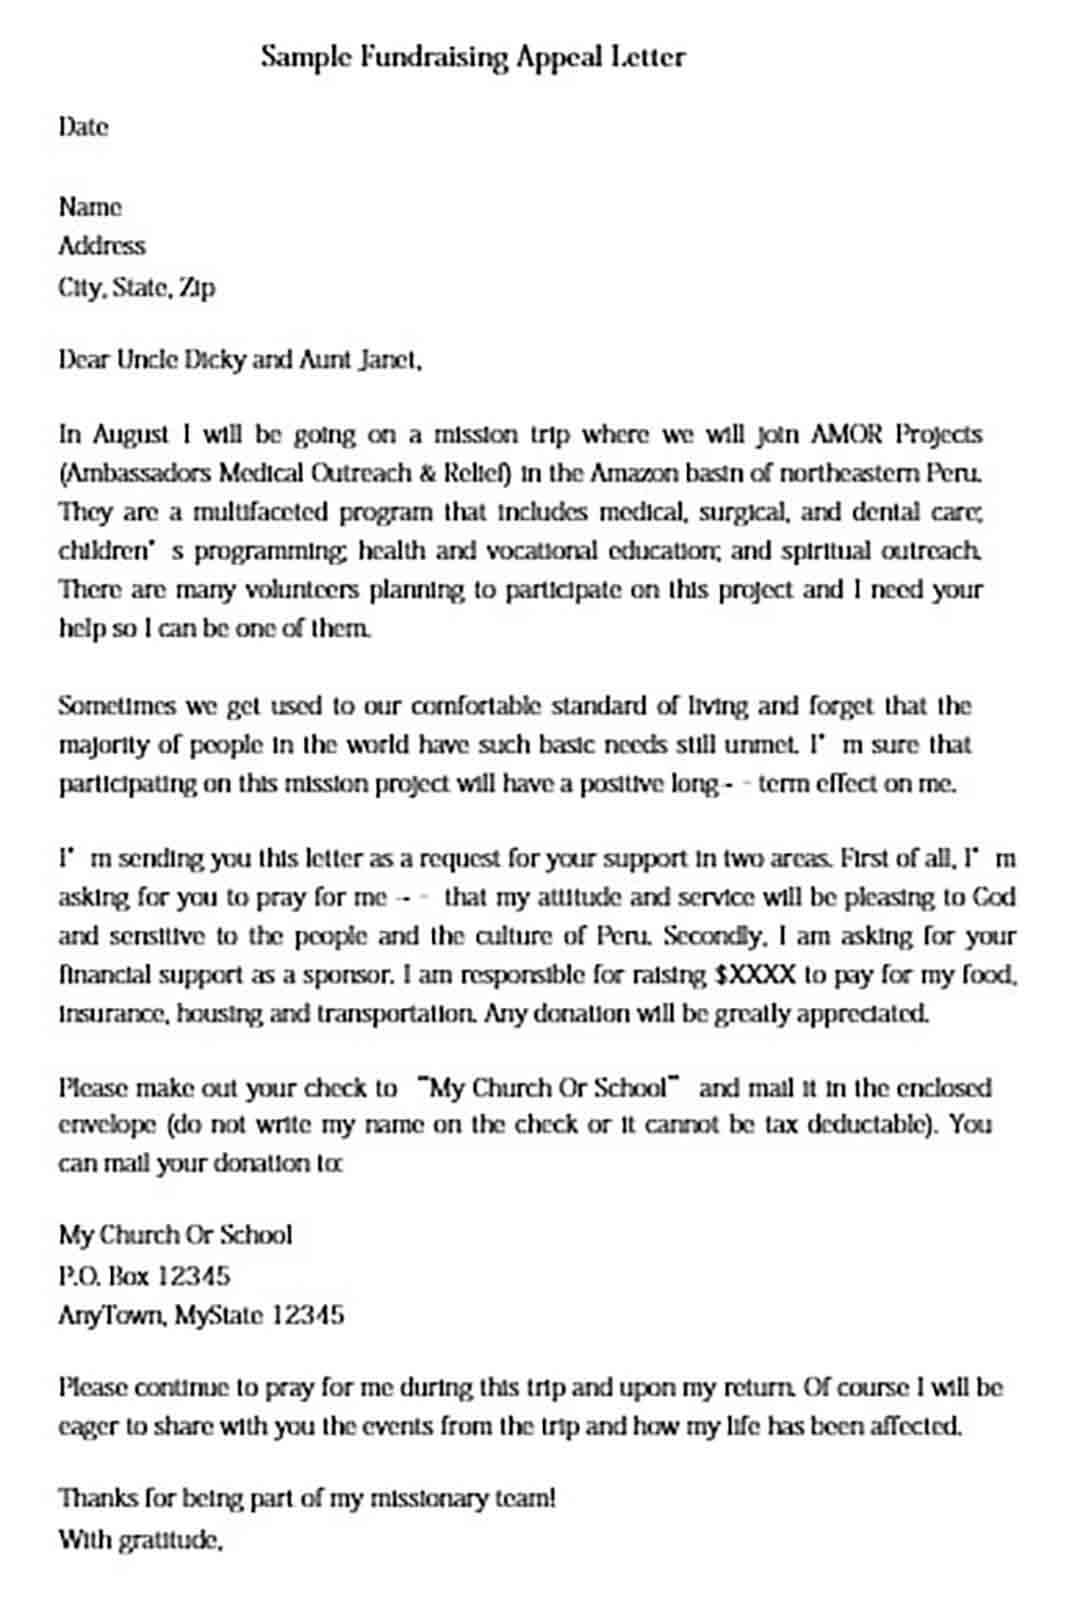 Fundraising Appeal Letter Example